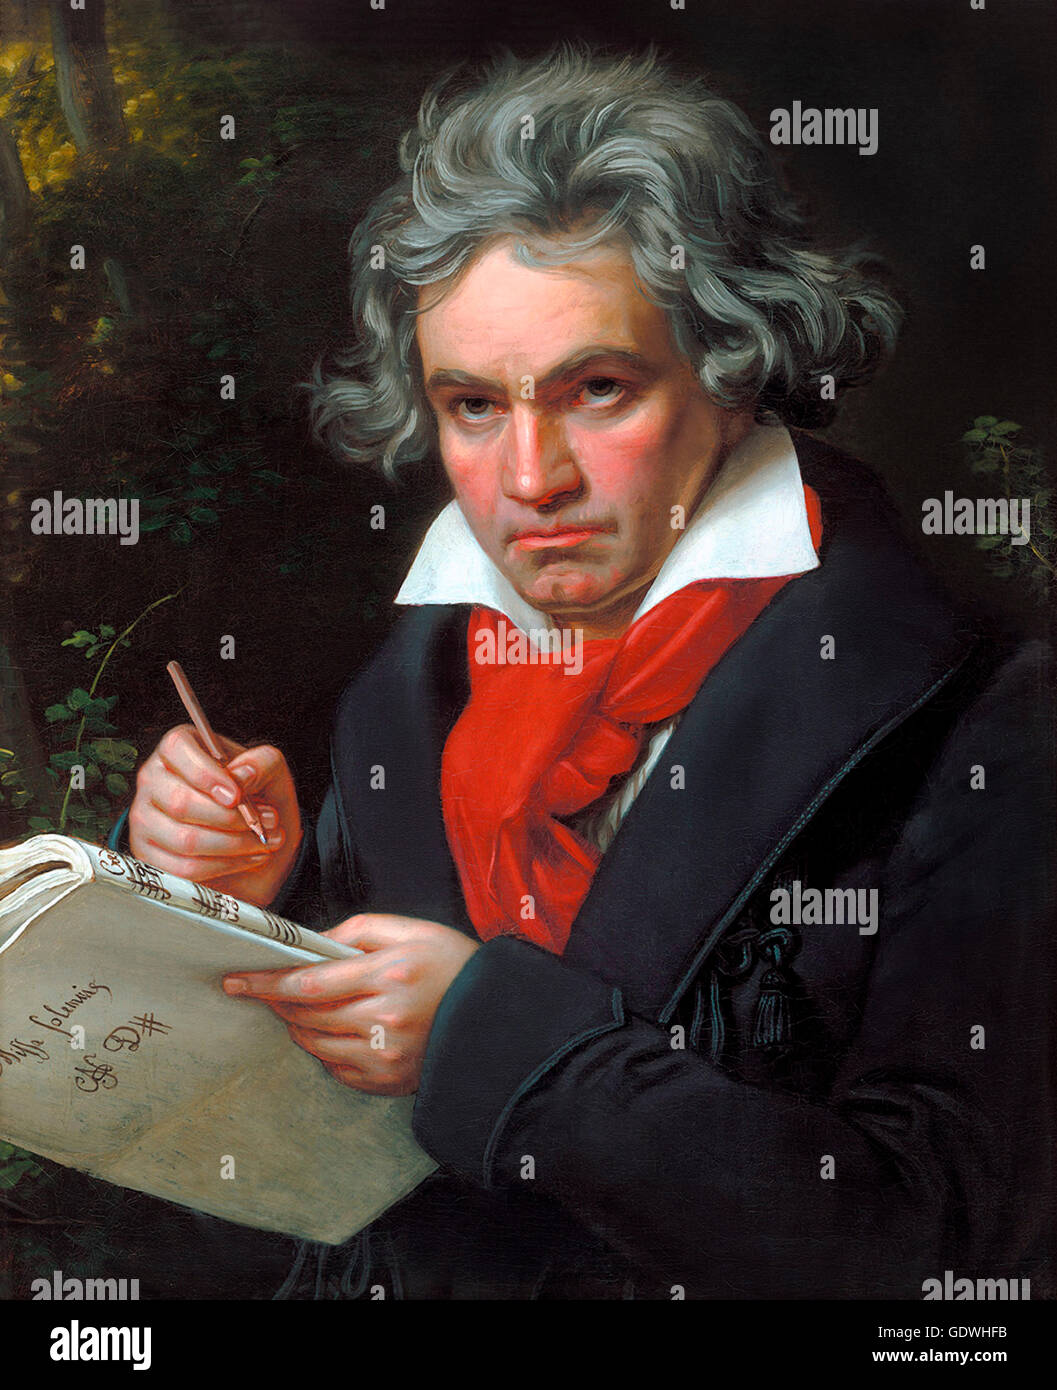 Beethoven. Portrait of the German composer Ludwig van Beethoven (1770-1827) by Joseph Karl Stieler, oil on canvas, - Stock Image